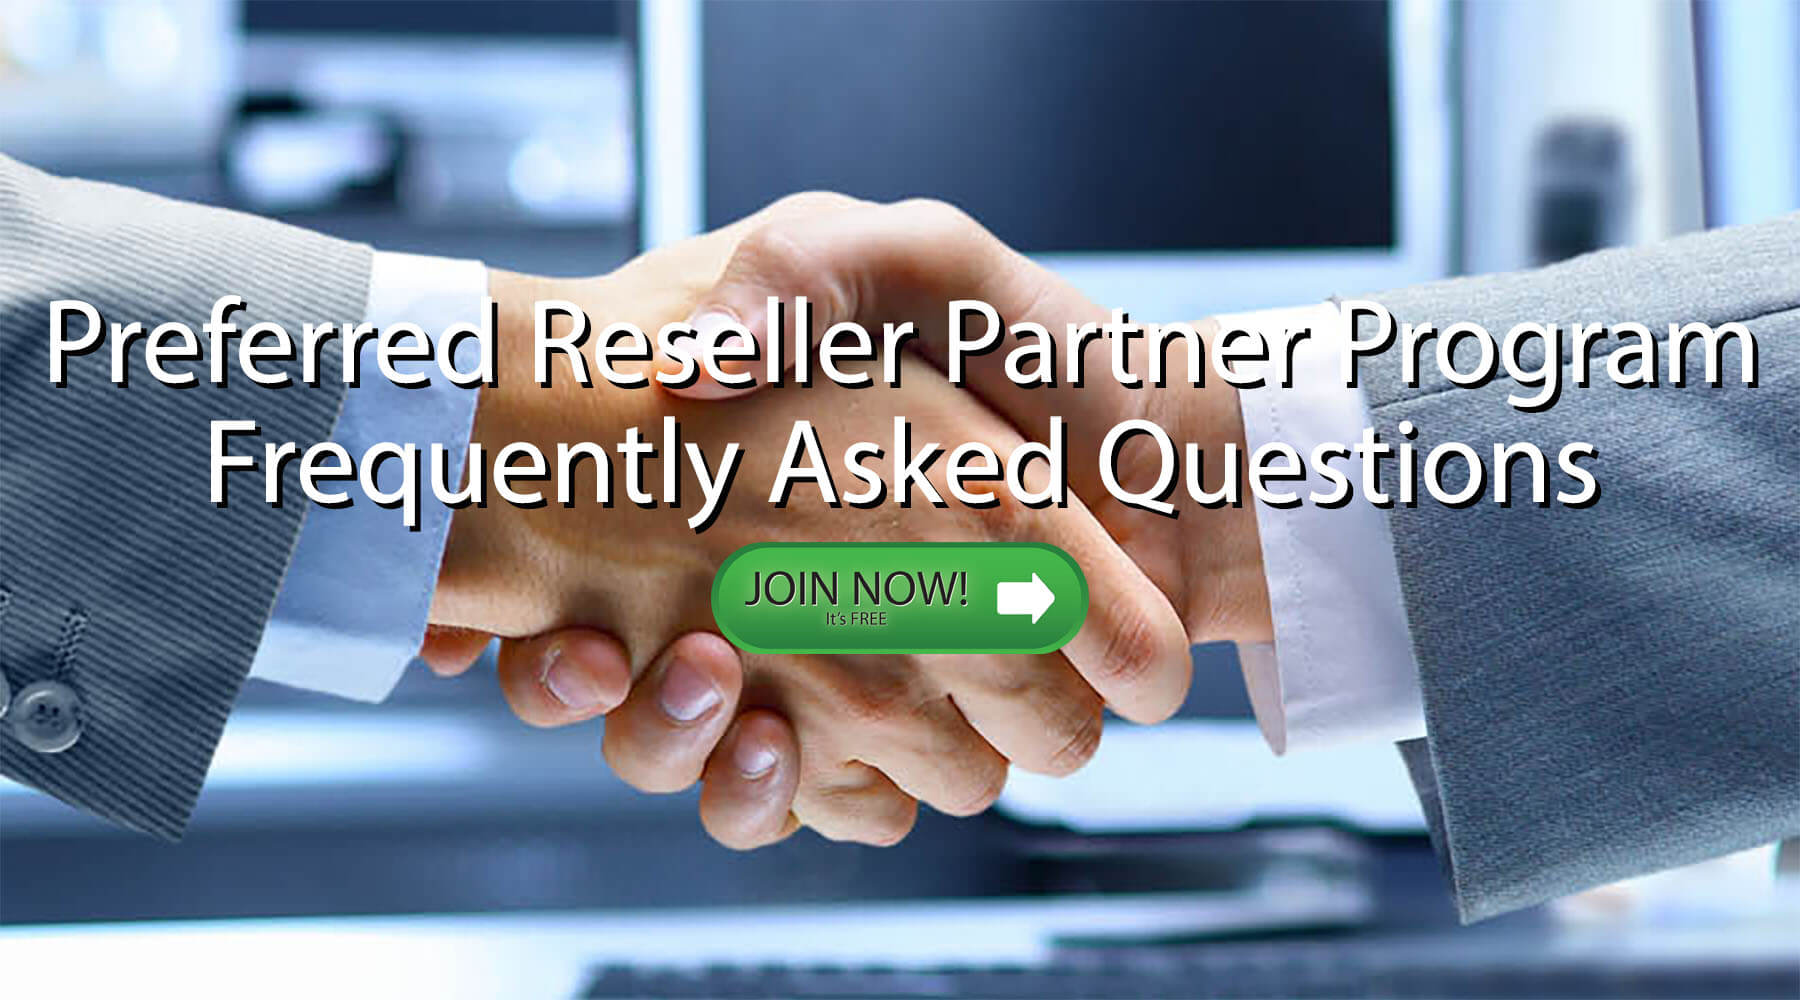 Wallhogs Preferred Reseller Partner Program Frequently Asked Questions Enrollment